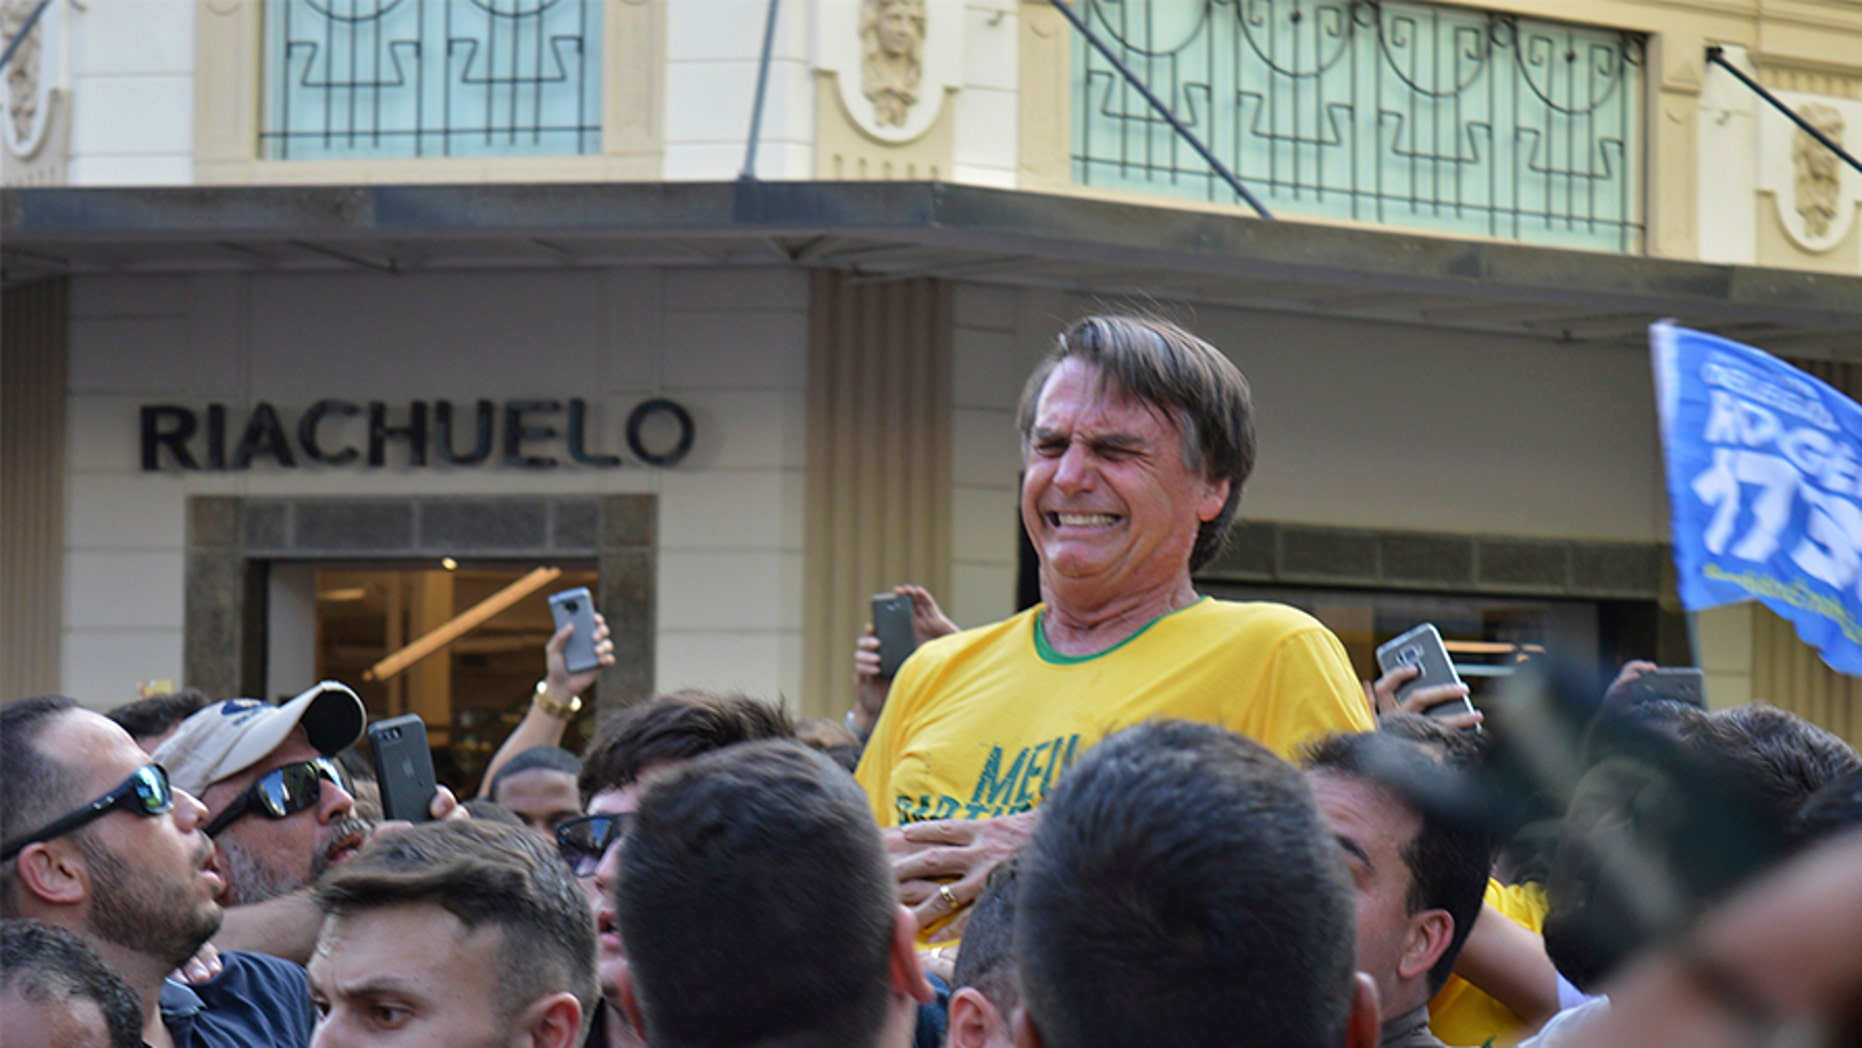 Brazilian presidential candidate Jair Bolsonaro grimaces after being stabbed in the stomach during a campaign rally in Juiz de Fora, Brazil on Thursday.